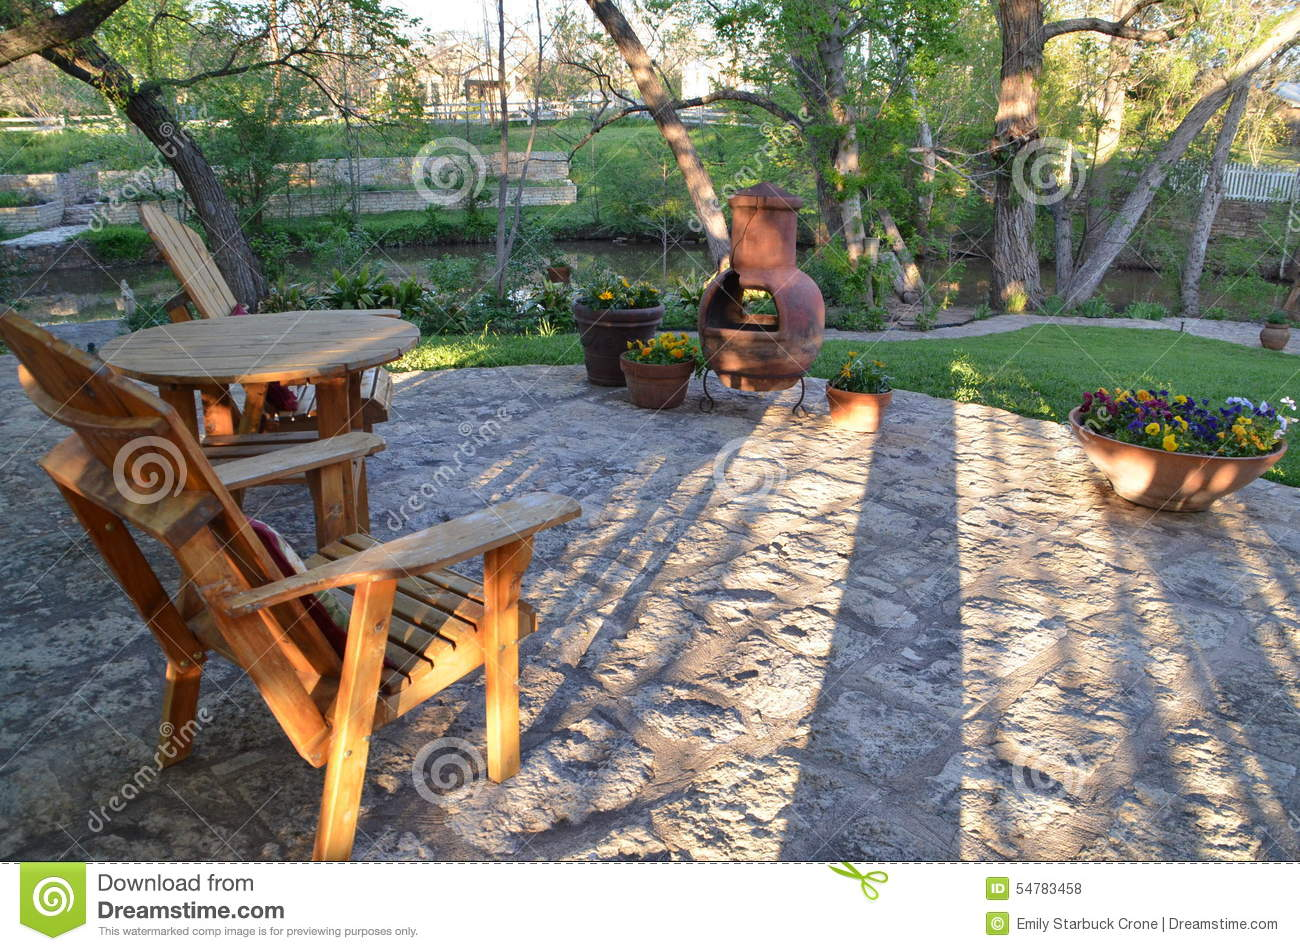 Attrayant Outdoor Patio With Wooden Furniture And Chiminea